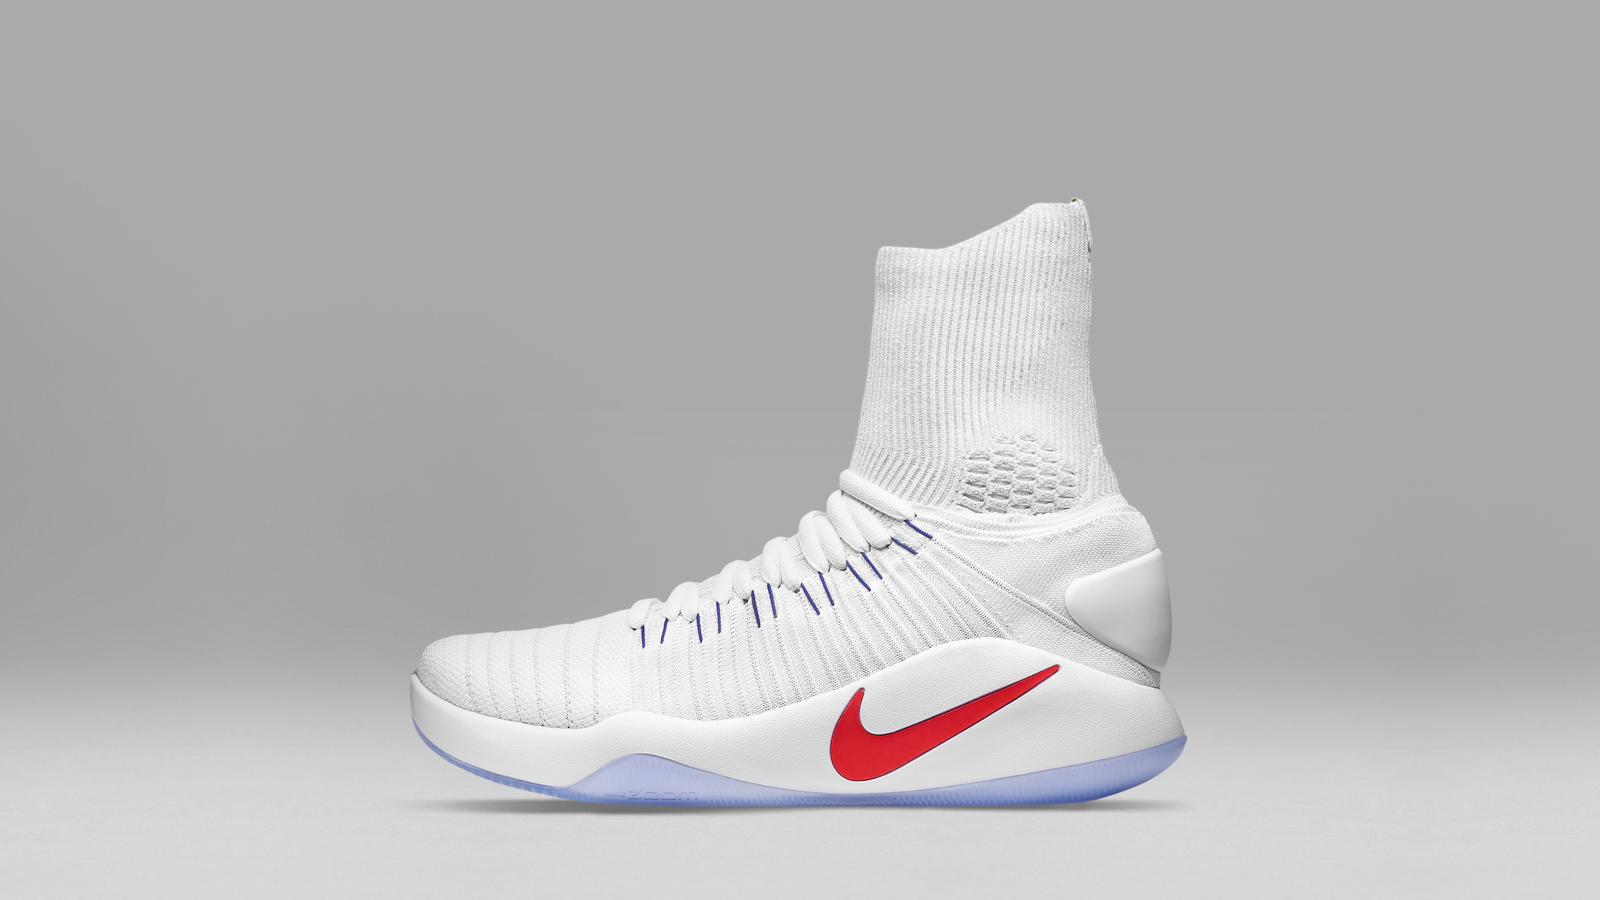 Nike Hyperdunk 2016 Exemplifies Performance Innovation